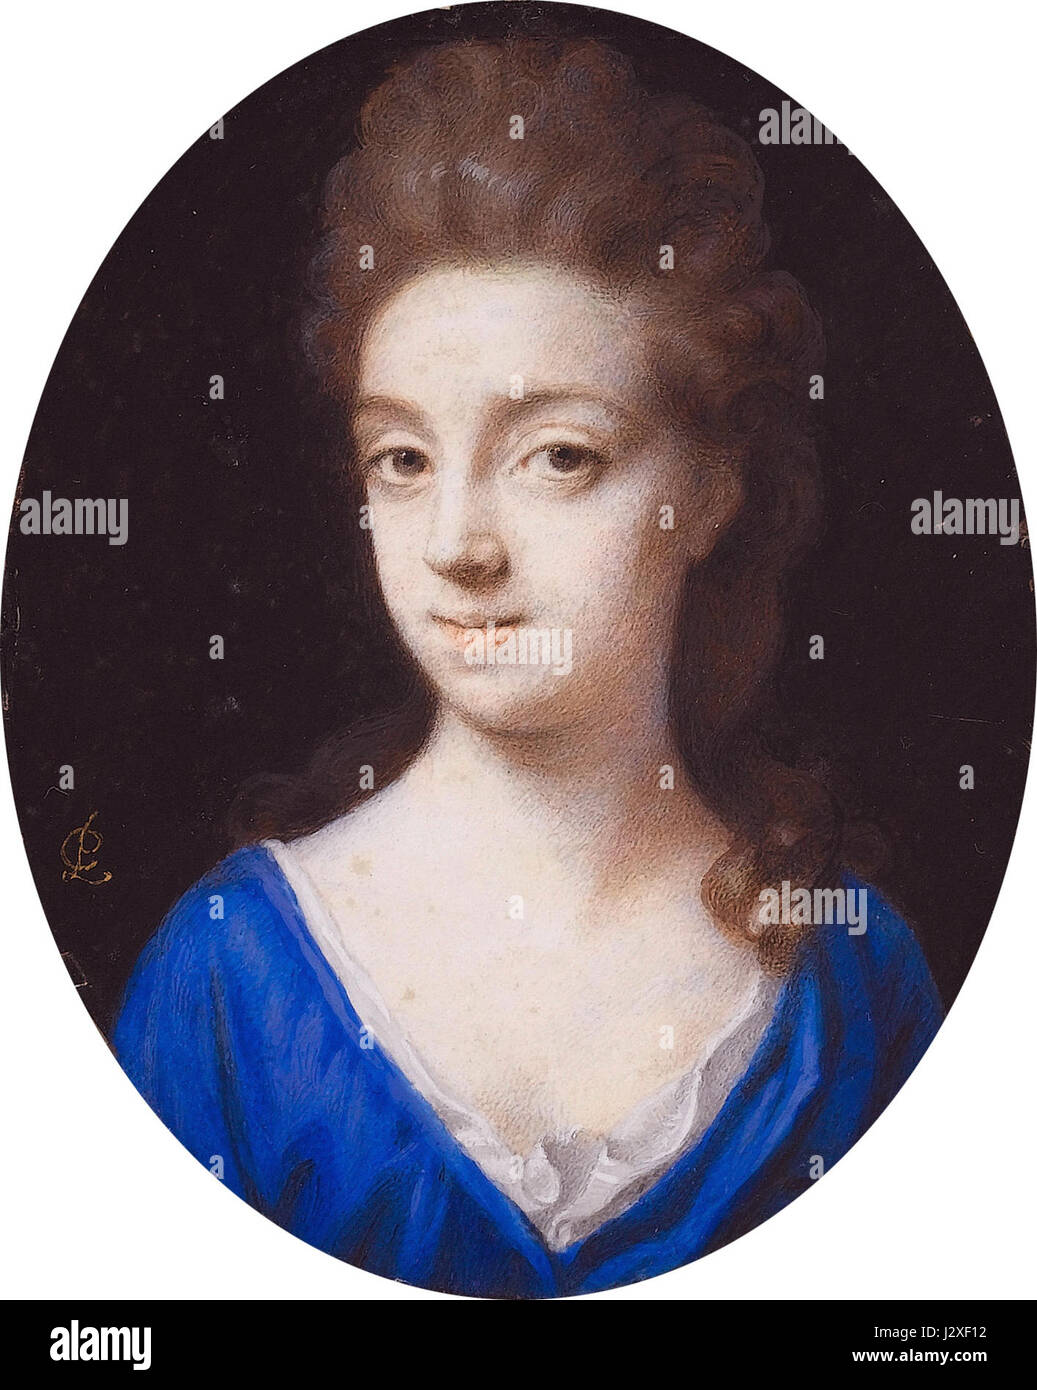 Carey, Countess of Peterborough, by Peter Cross (c 1650-1724) - Stock Image